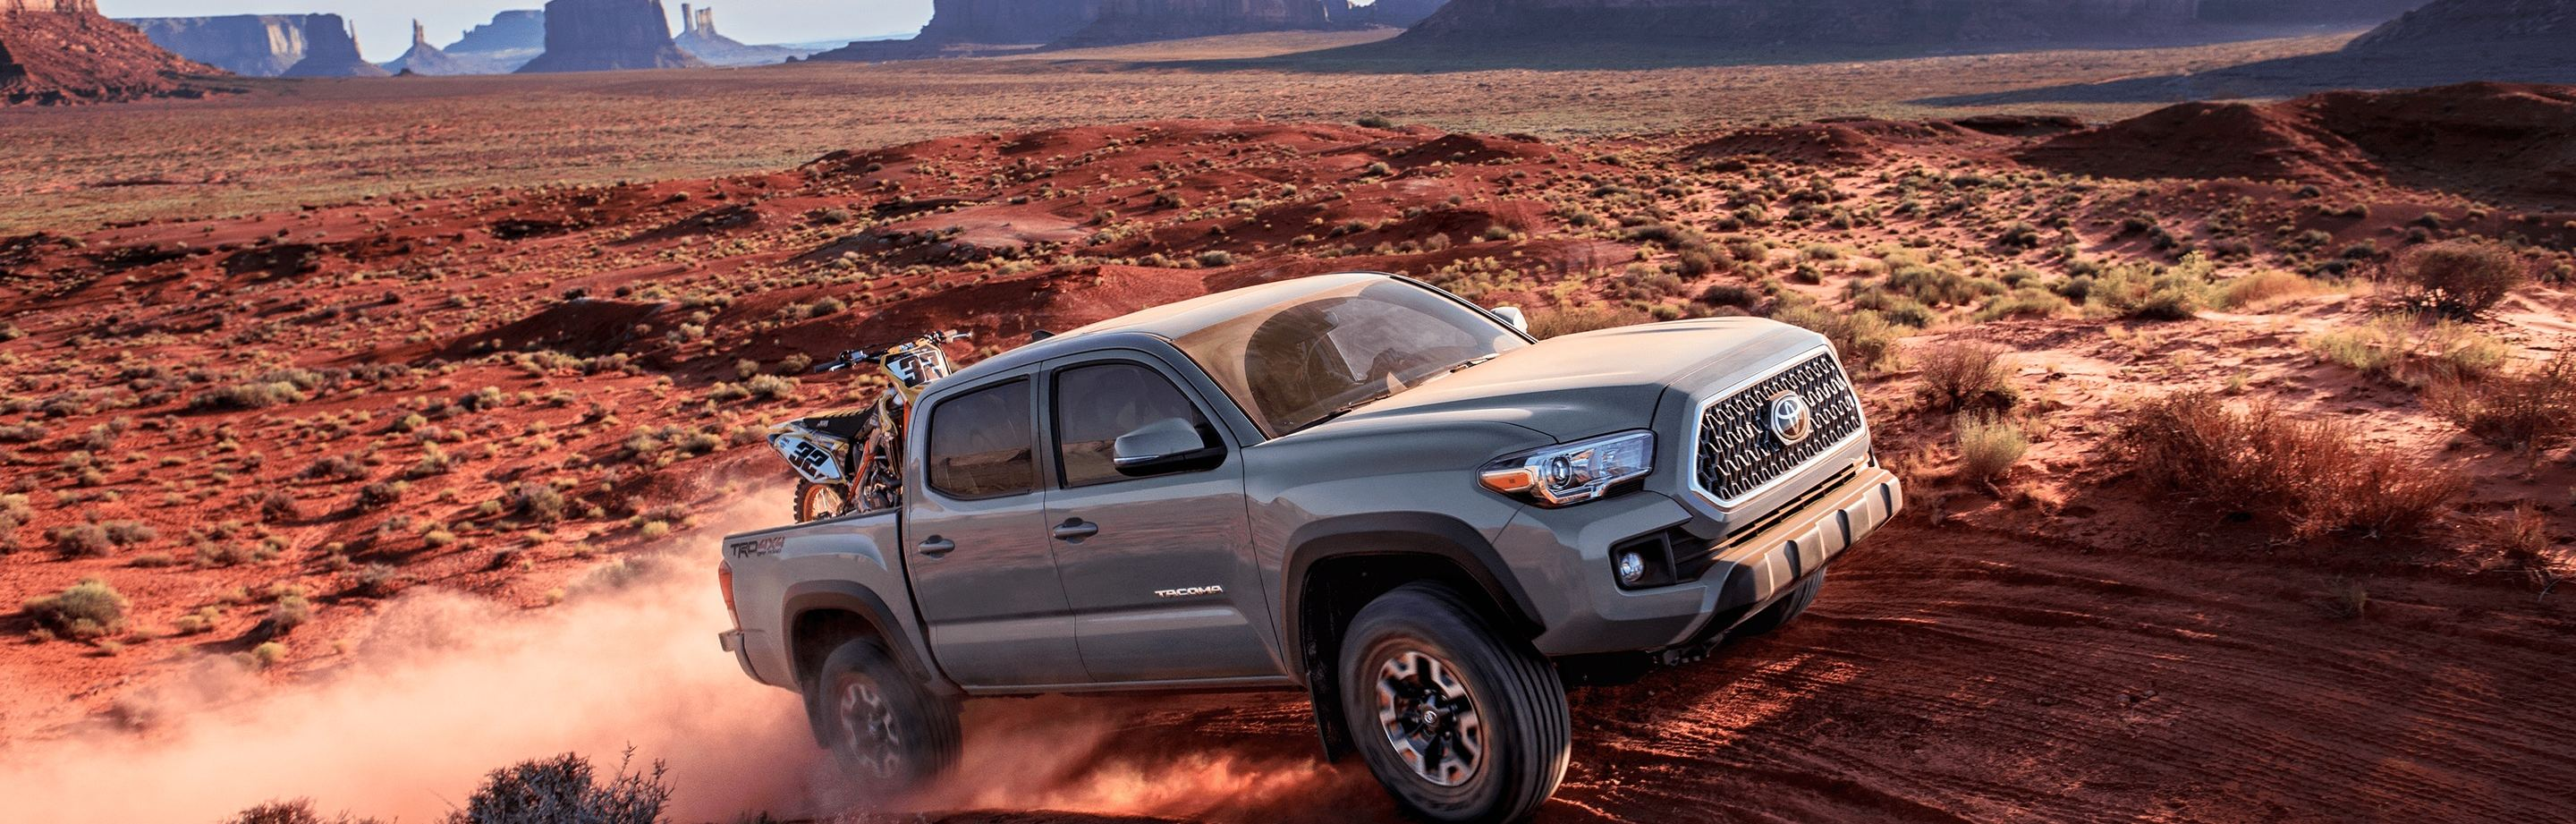 2019 Toyota Tacoma for Sale near Milpitas, CA